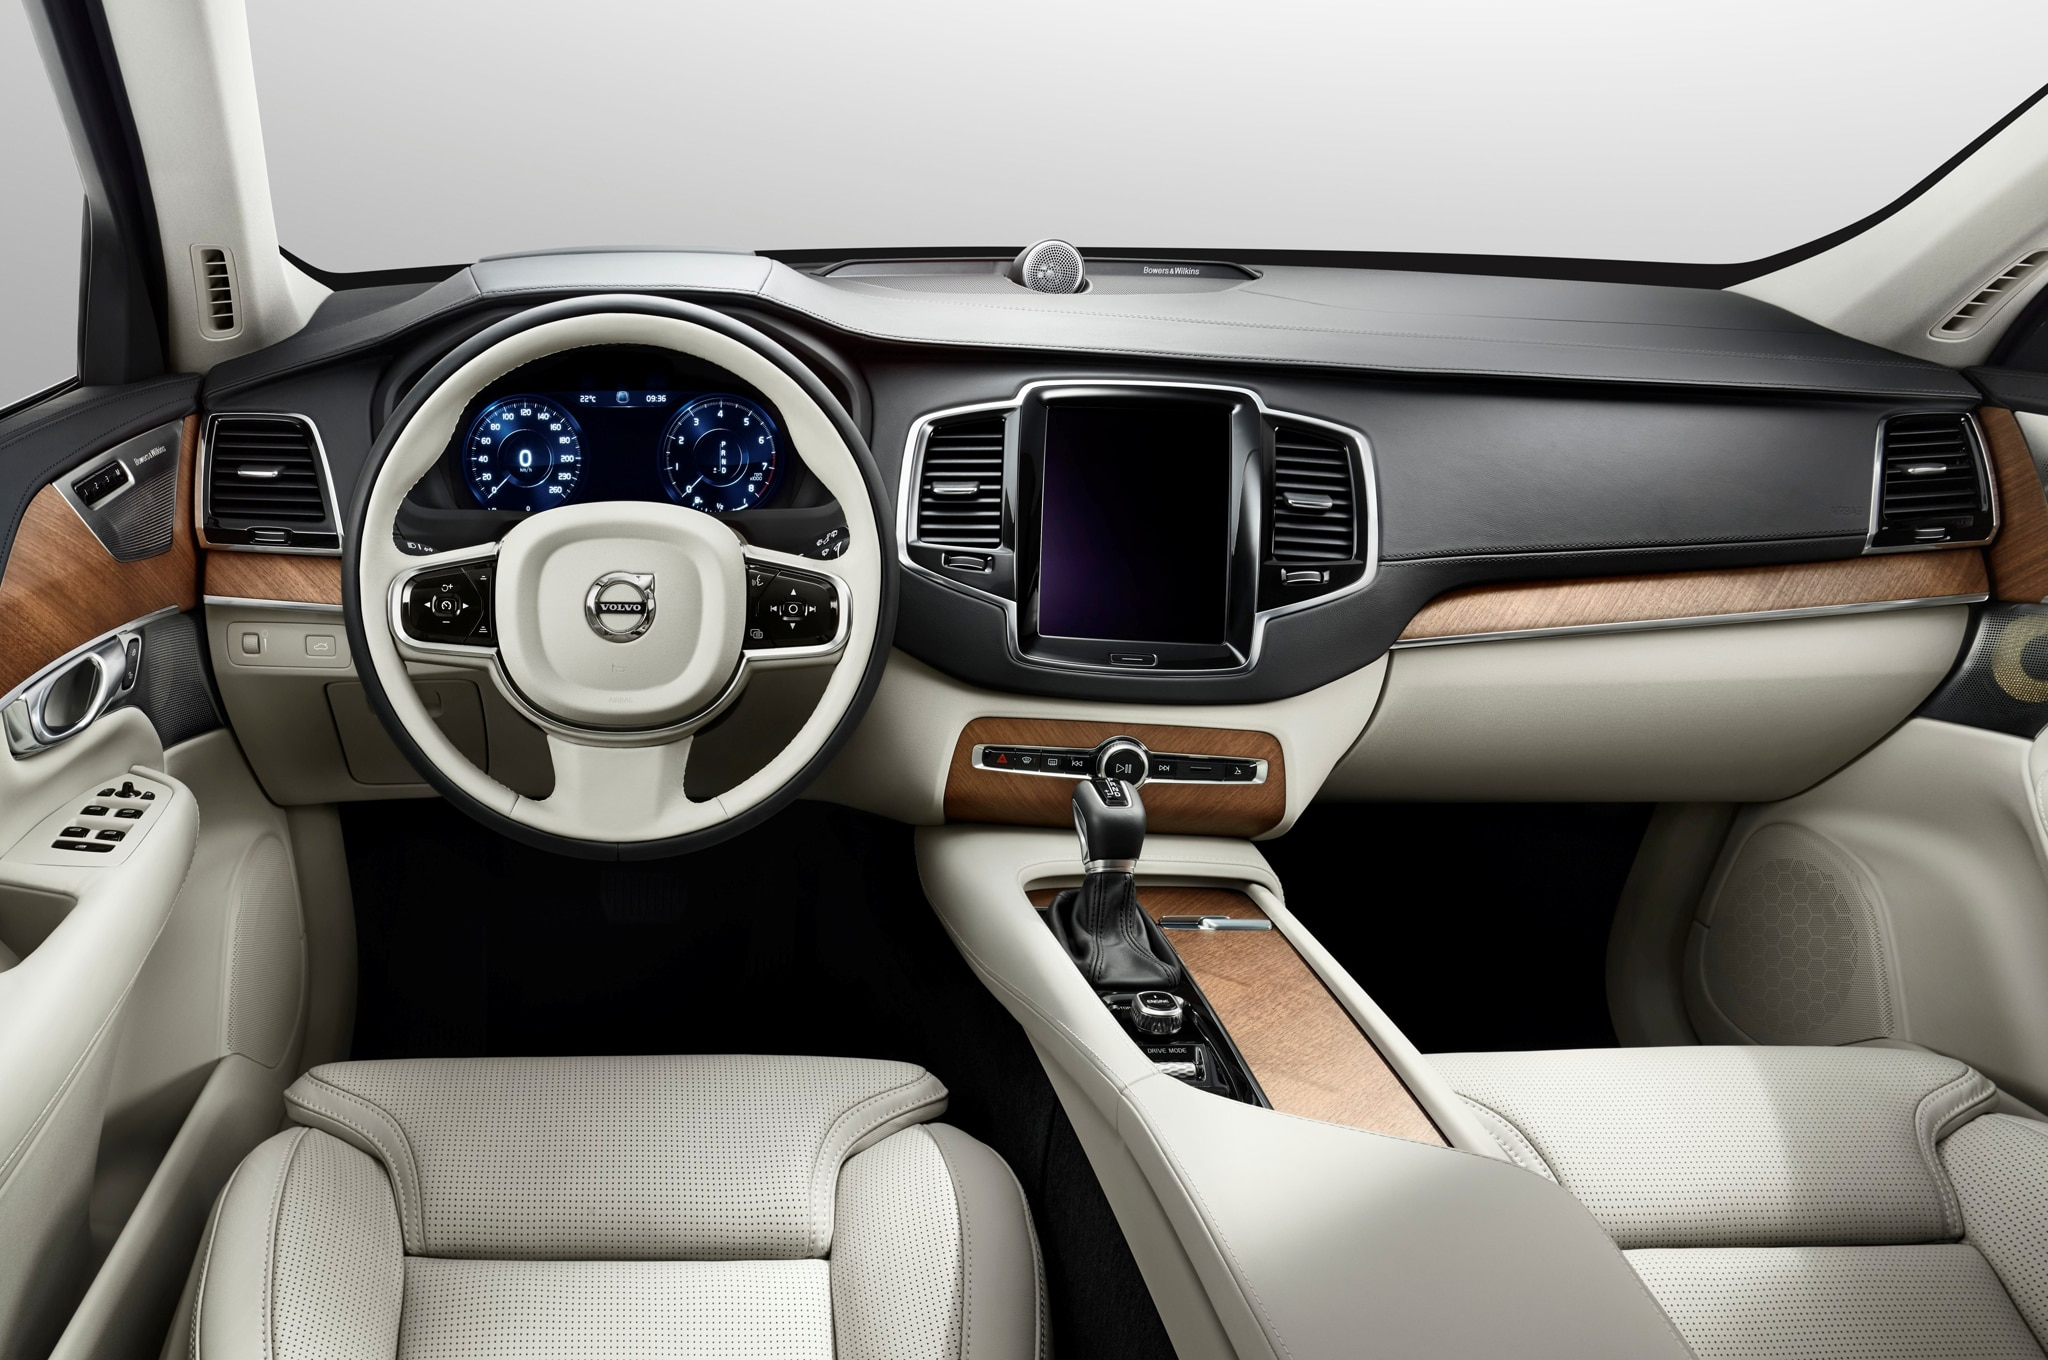 2015 Volvo Xc90 Dashboard1